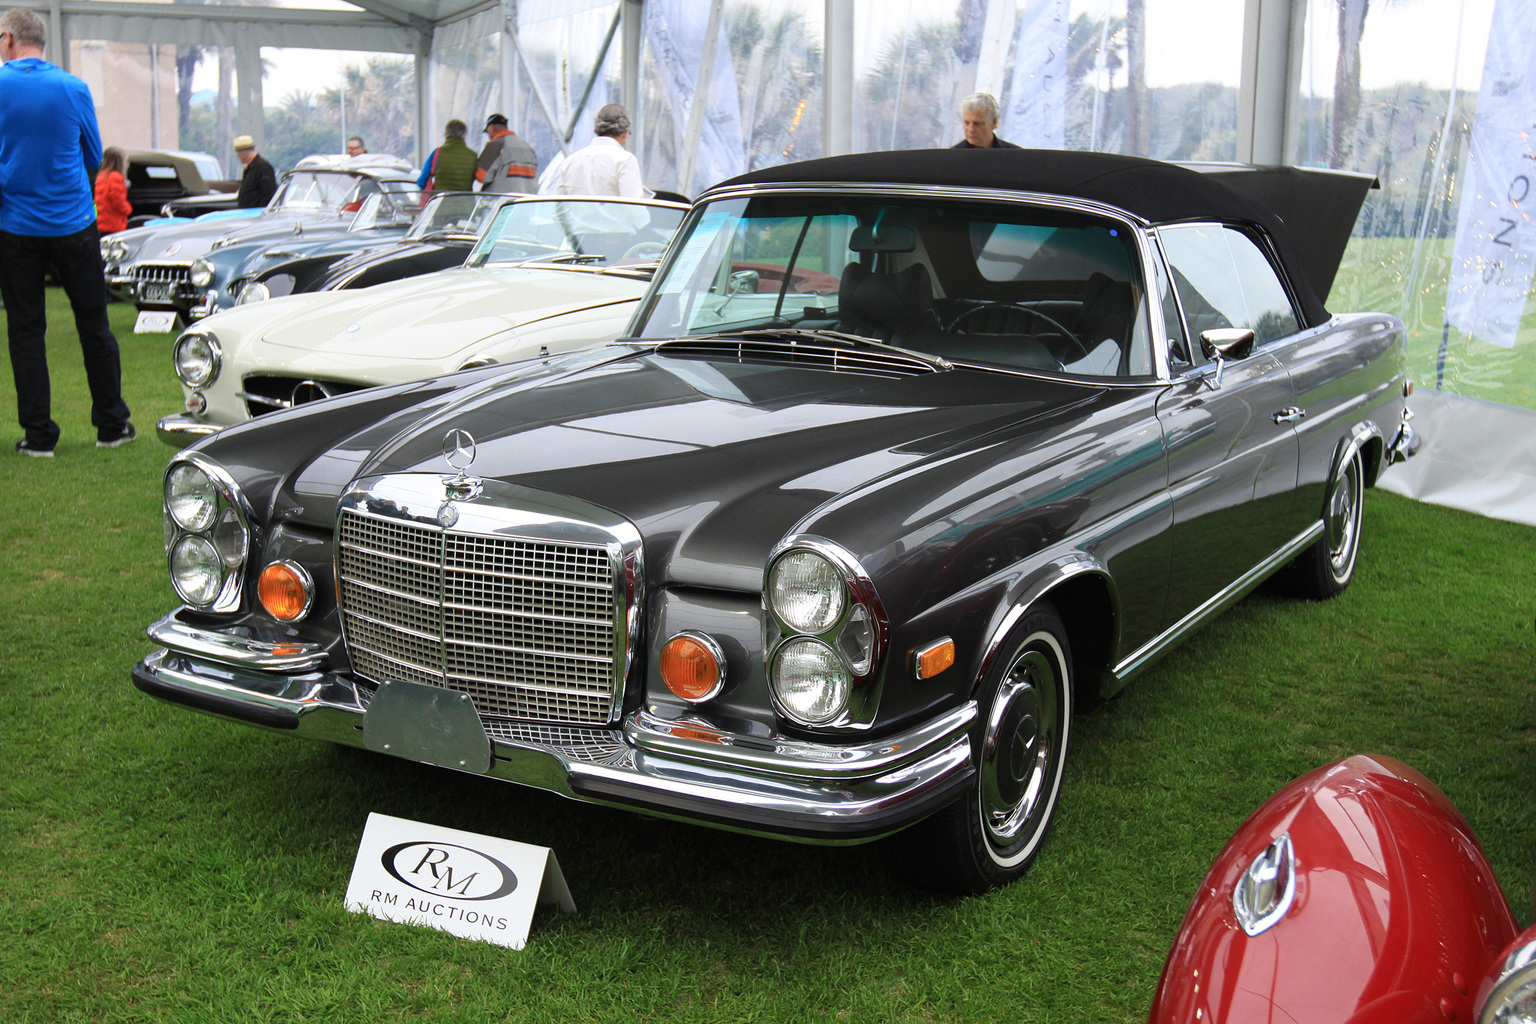 1969 mercedes benz 280 se 3 5 cabriolet gallery gallery for 1969 mercedes benz 280 se convertible